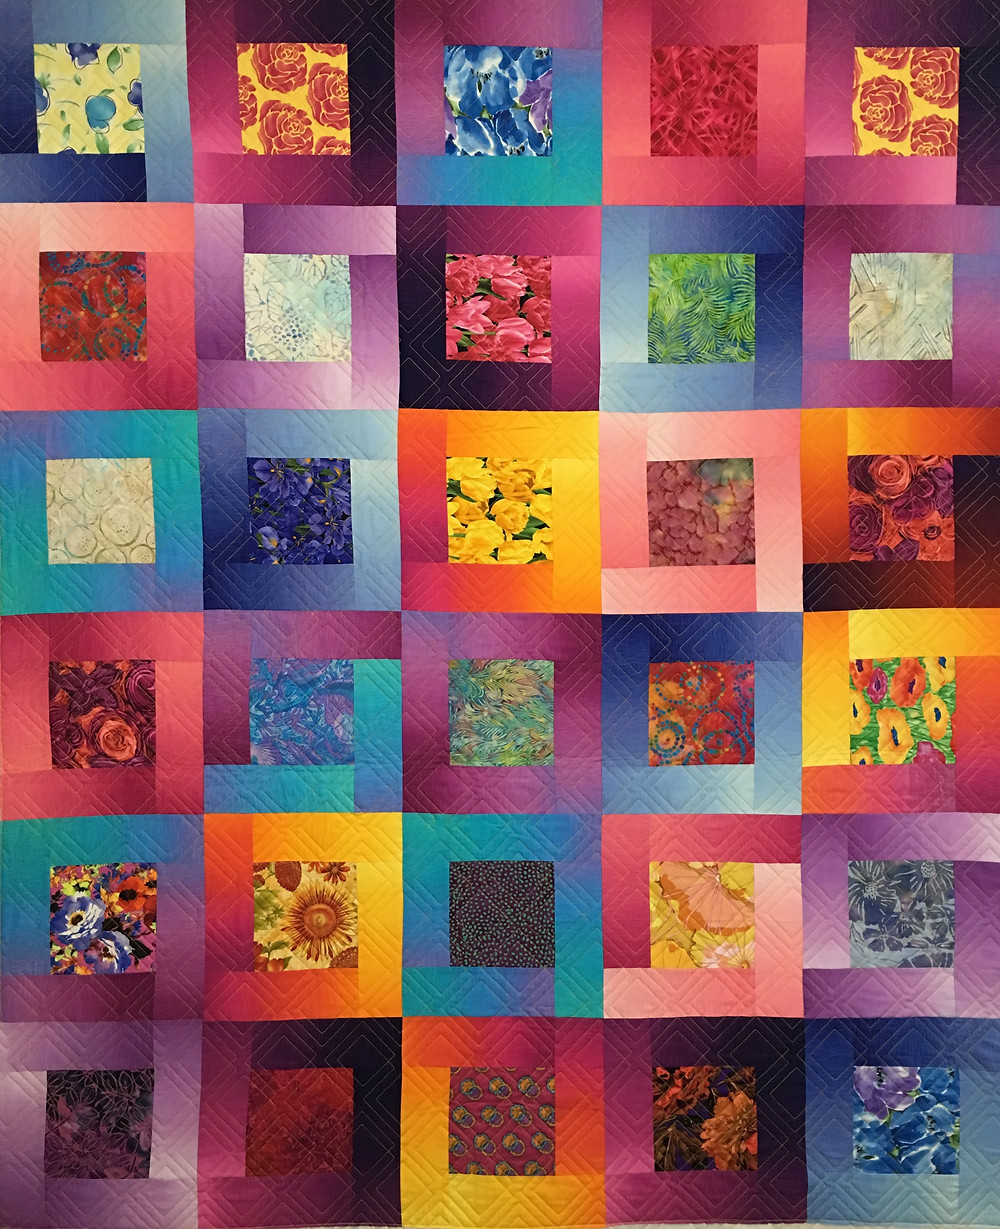 Bright Colors for Square in a Square Quilt by Linda Shields